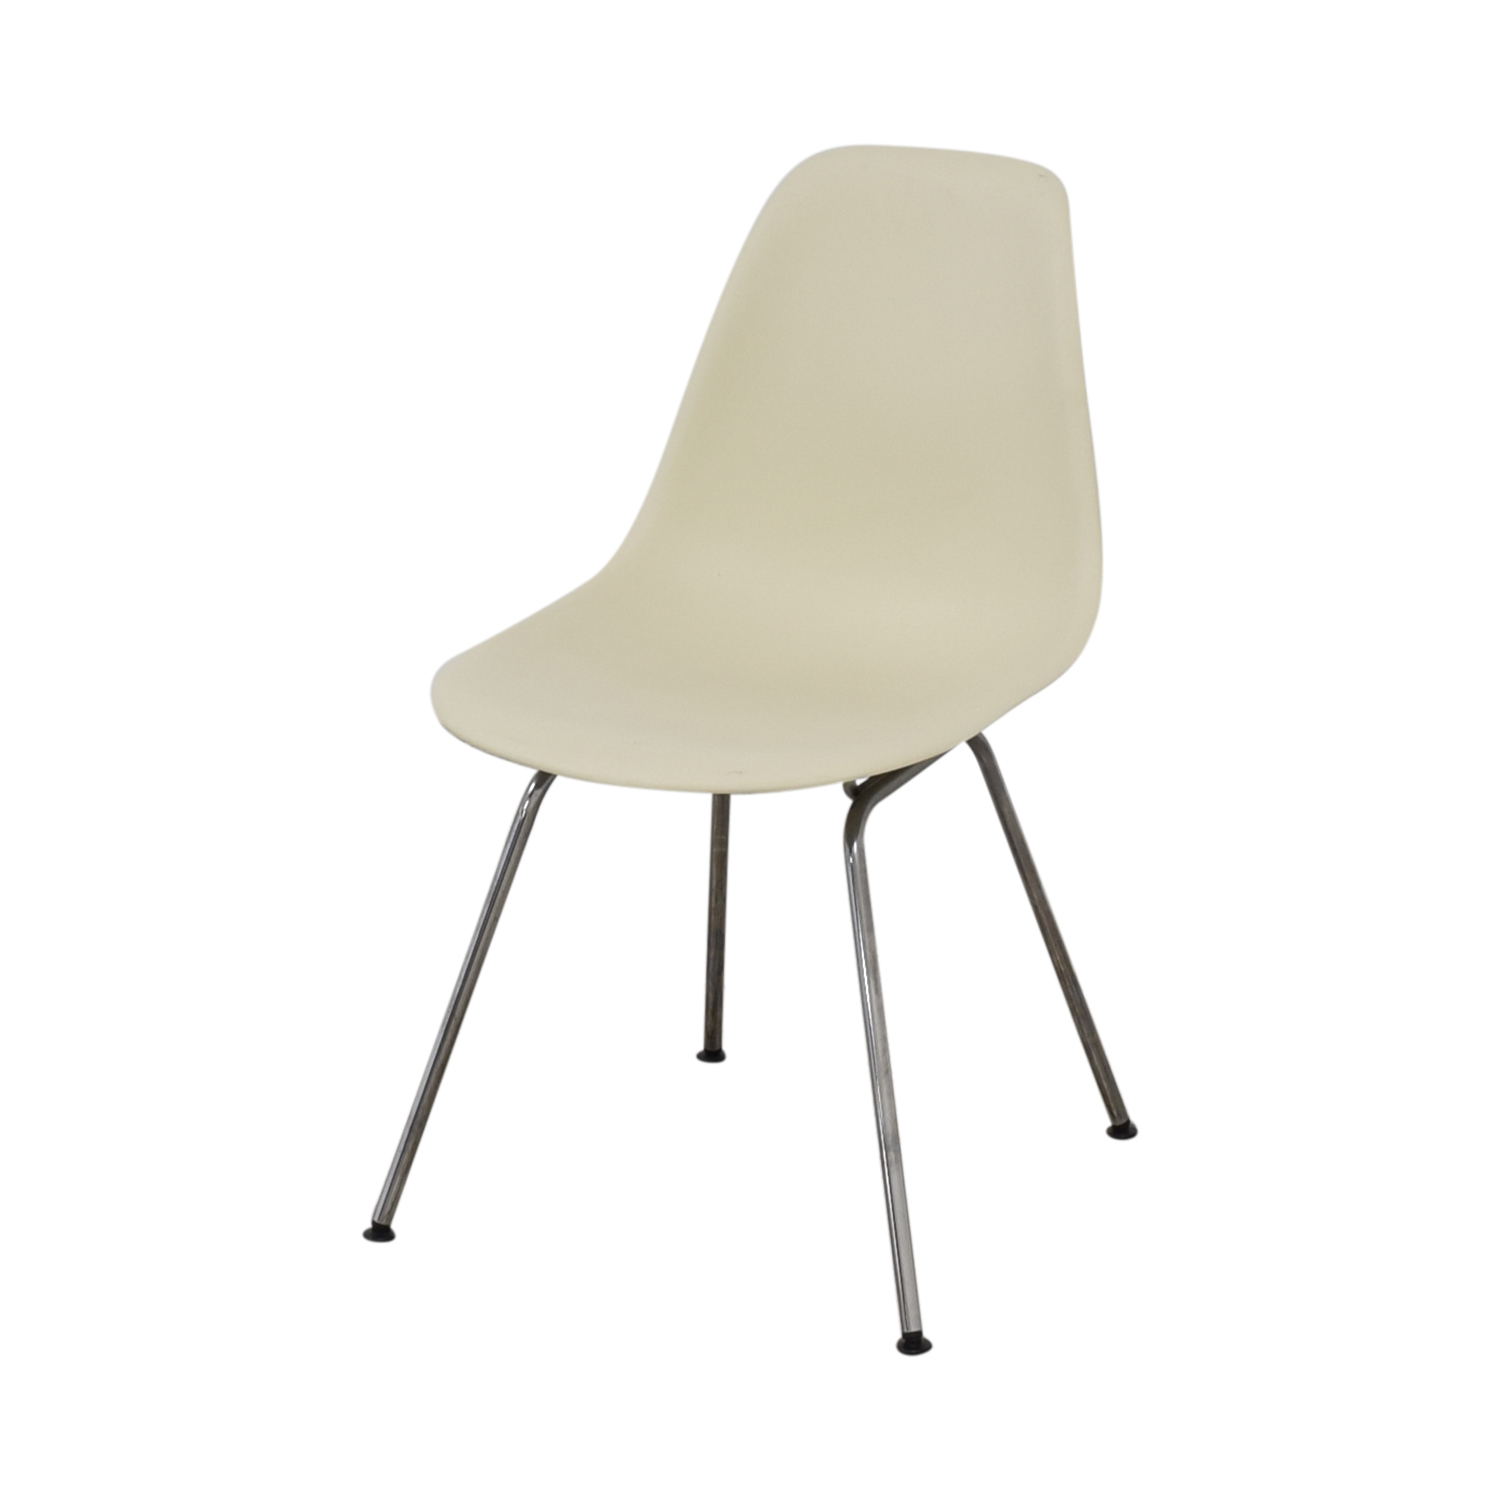 buy Design Within Reach Eames Molded Plastic 4 Leg Side Chair Design Within Reach Chairs